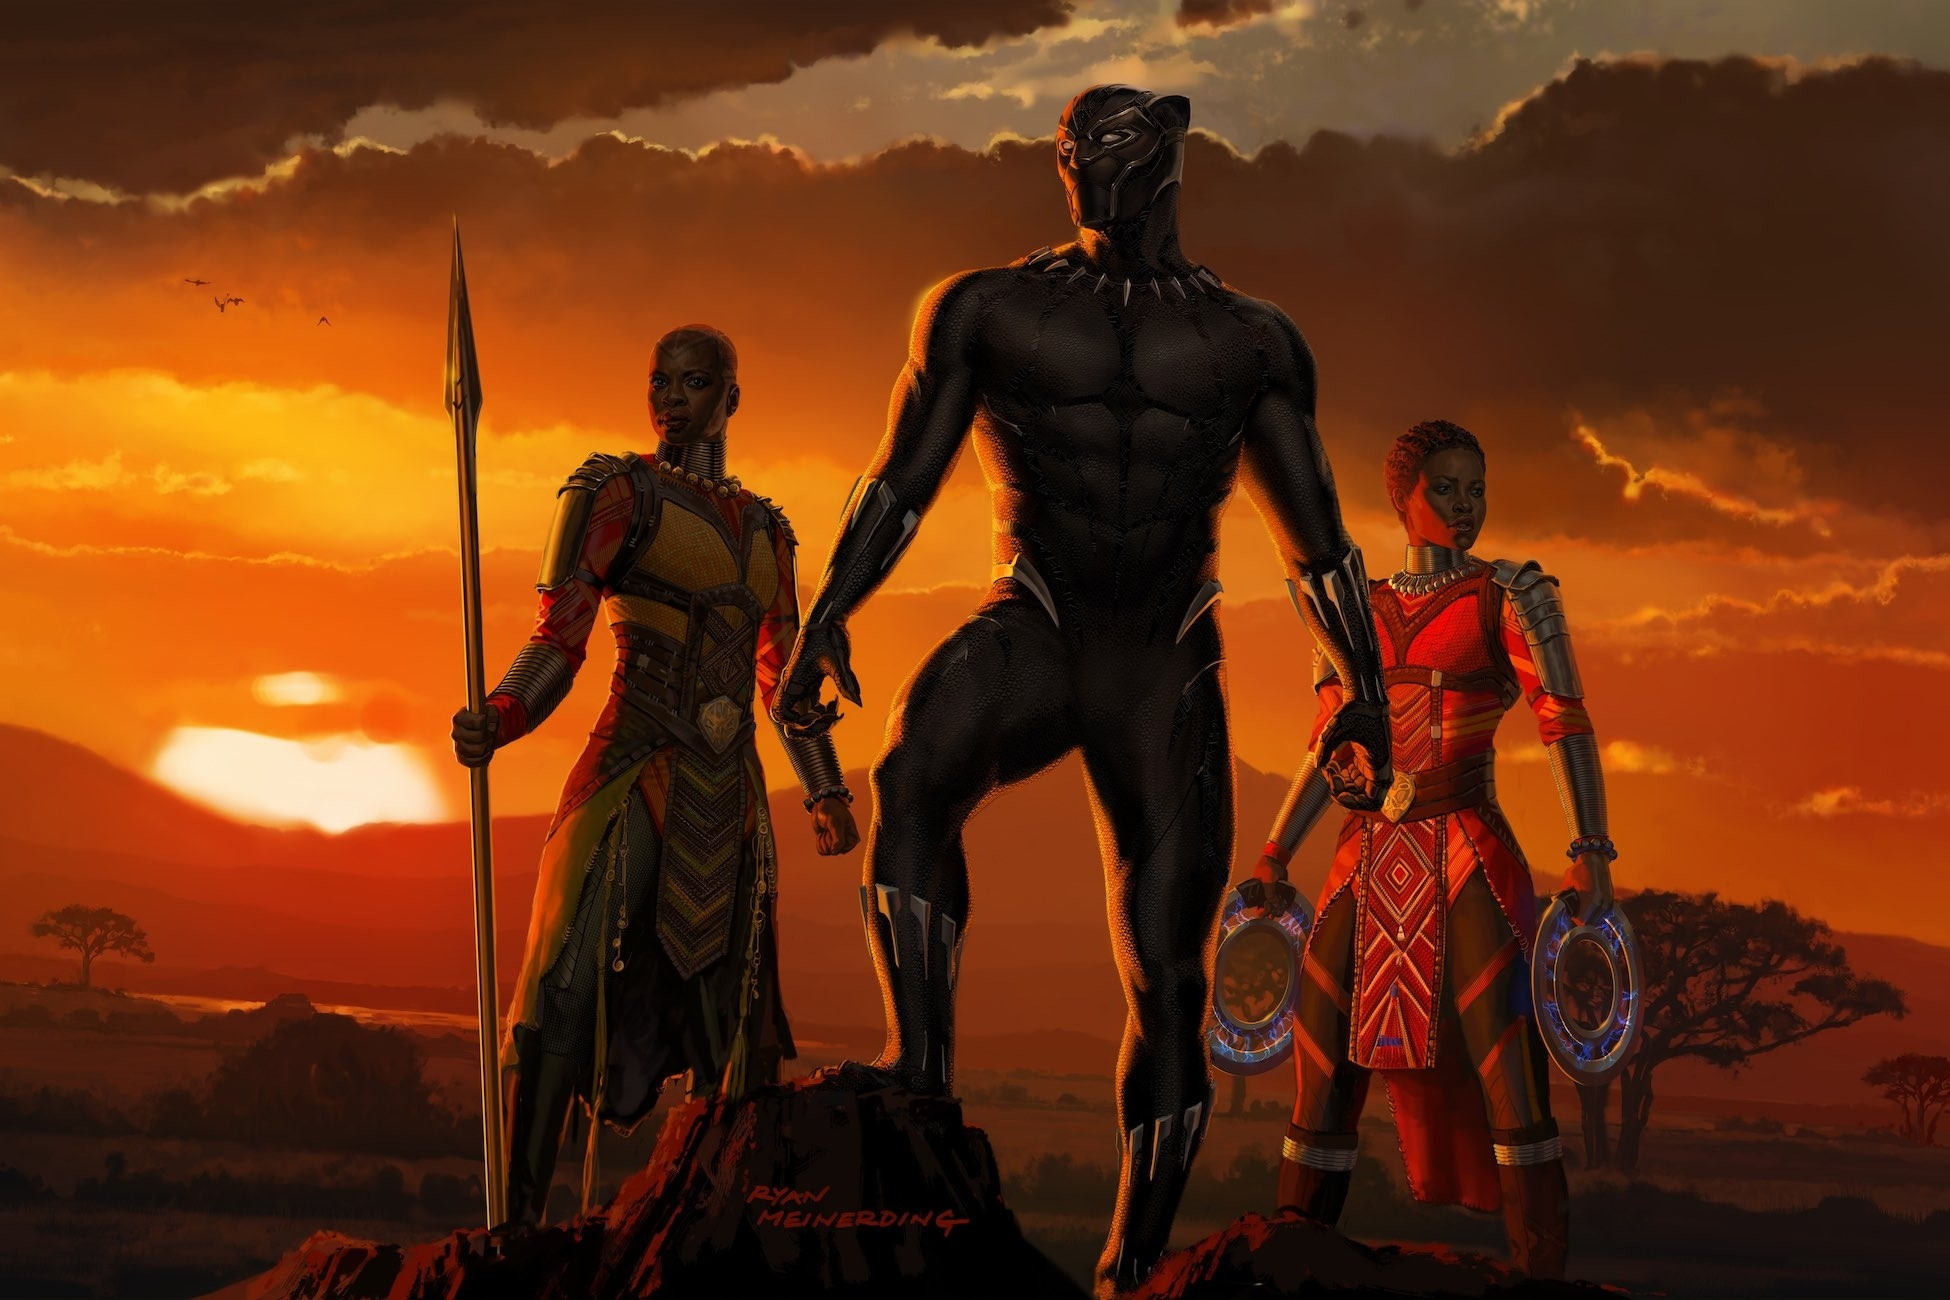 10 Best Black Panther Movie Wallpaper FULL HD 1080p For PC Desktop